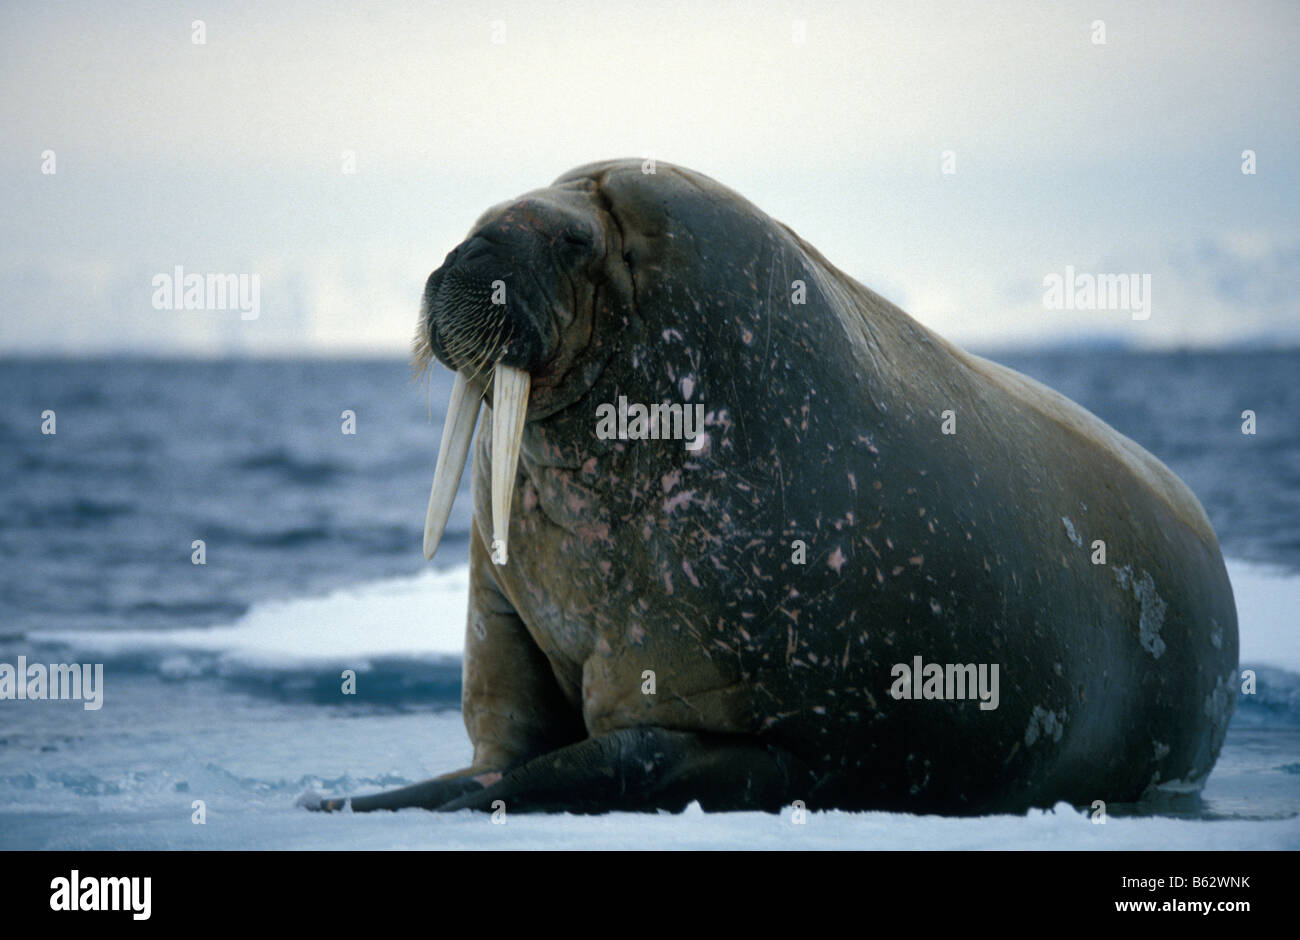 morse male Atlantic walrus on ice floe resting on ice floe the animal s skin flushes pink when warm to dissipate - Stock Image